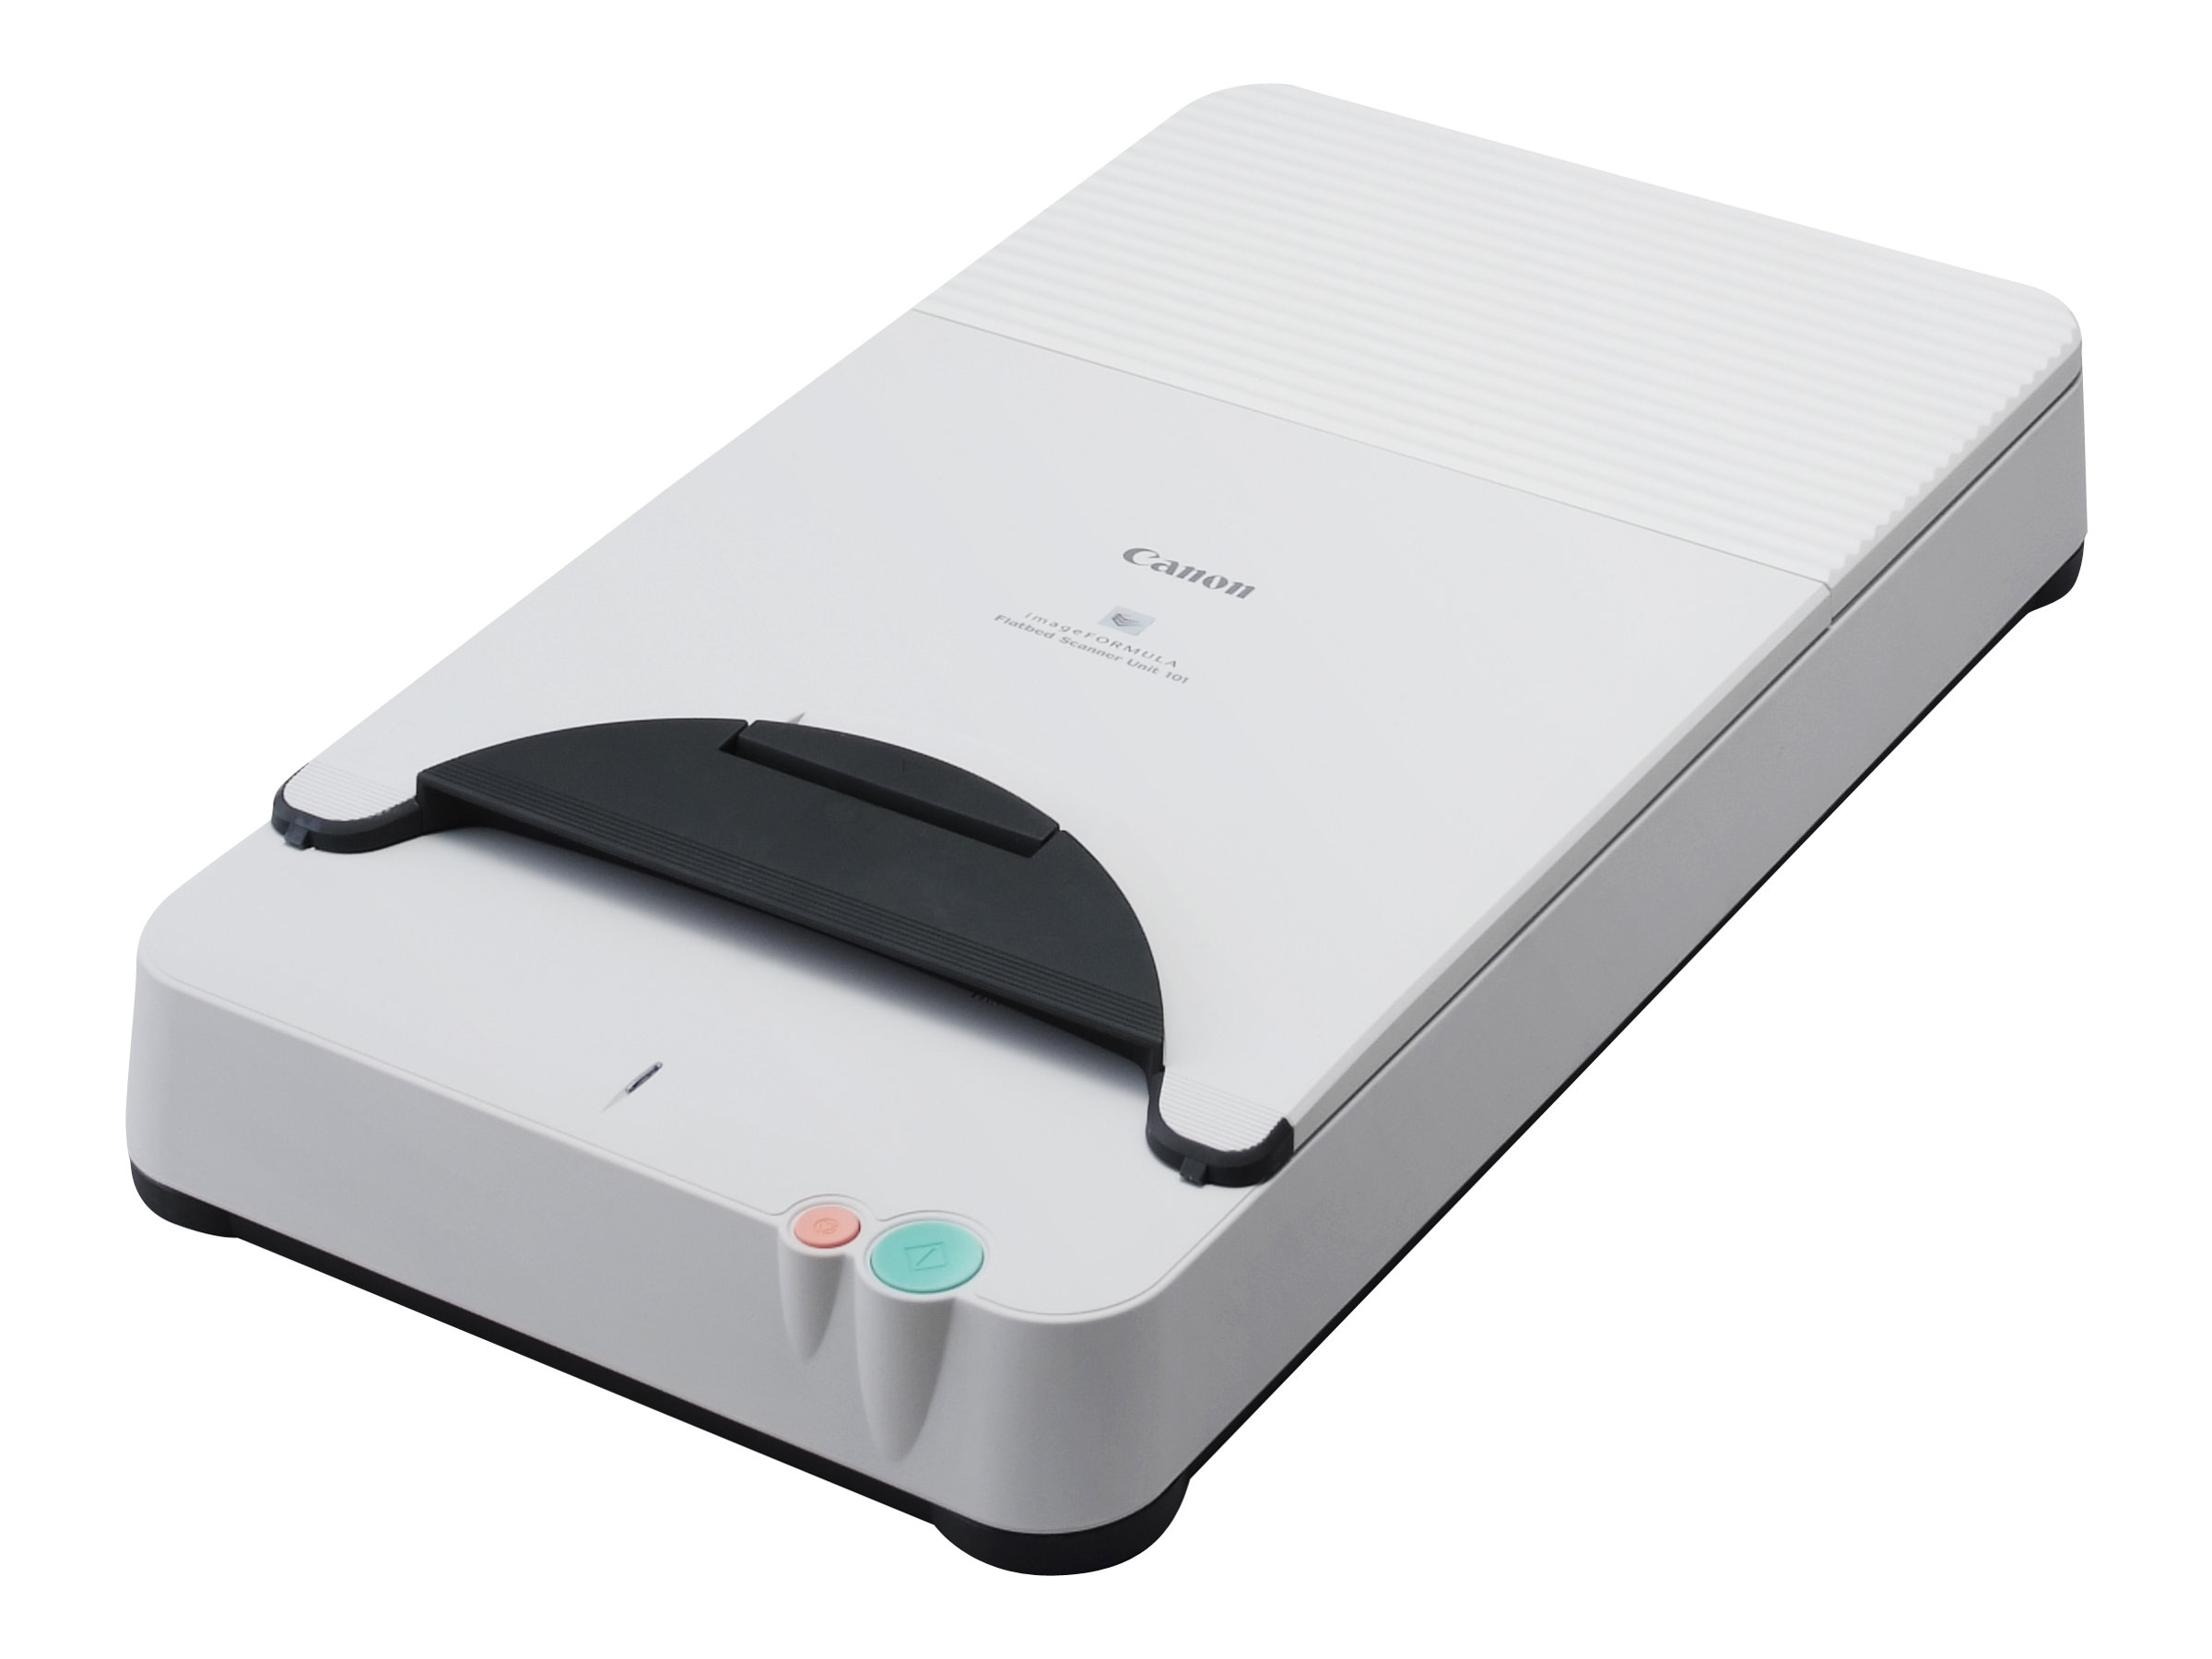 Canon Flatbed Scanner Unit FB 101 - Flachbettscanner - Legal